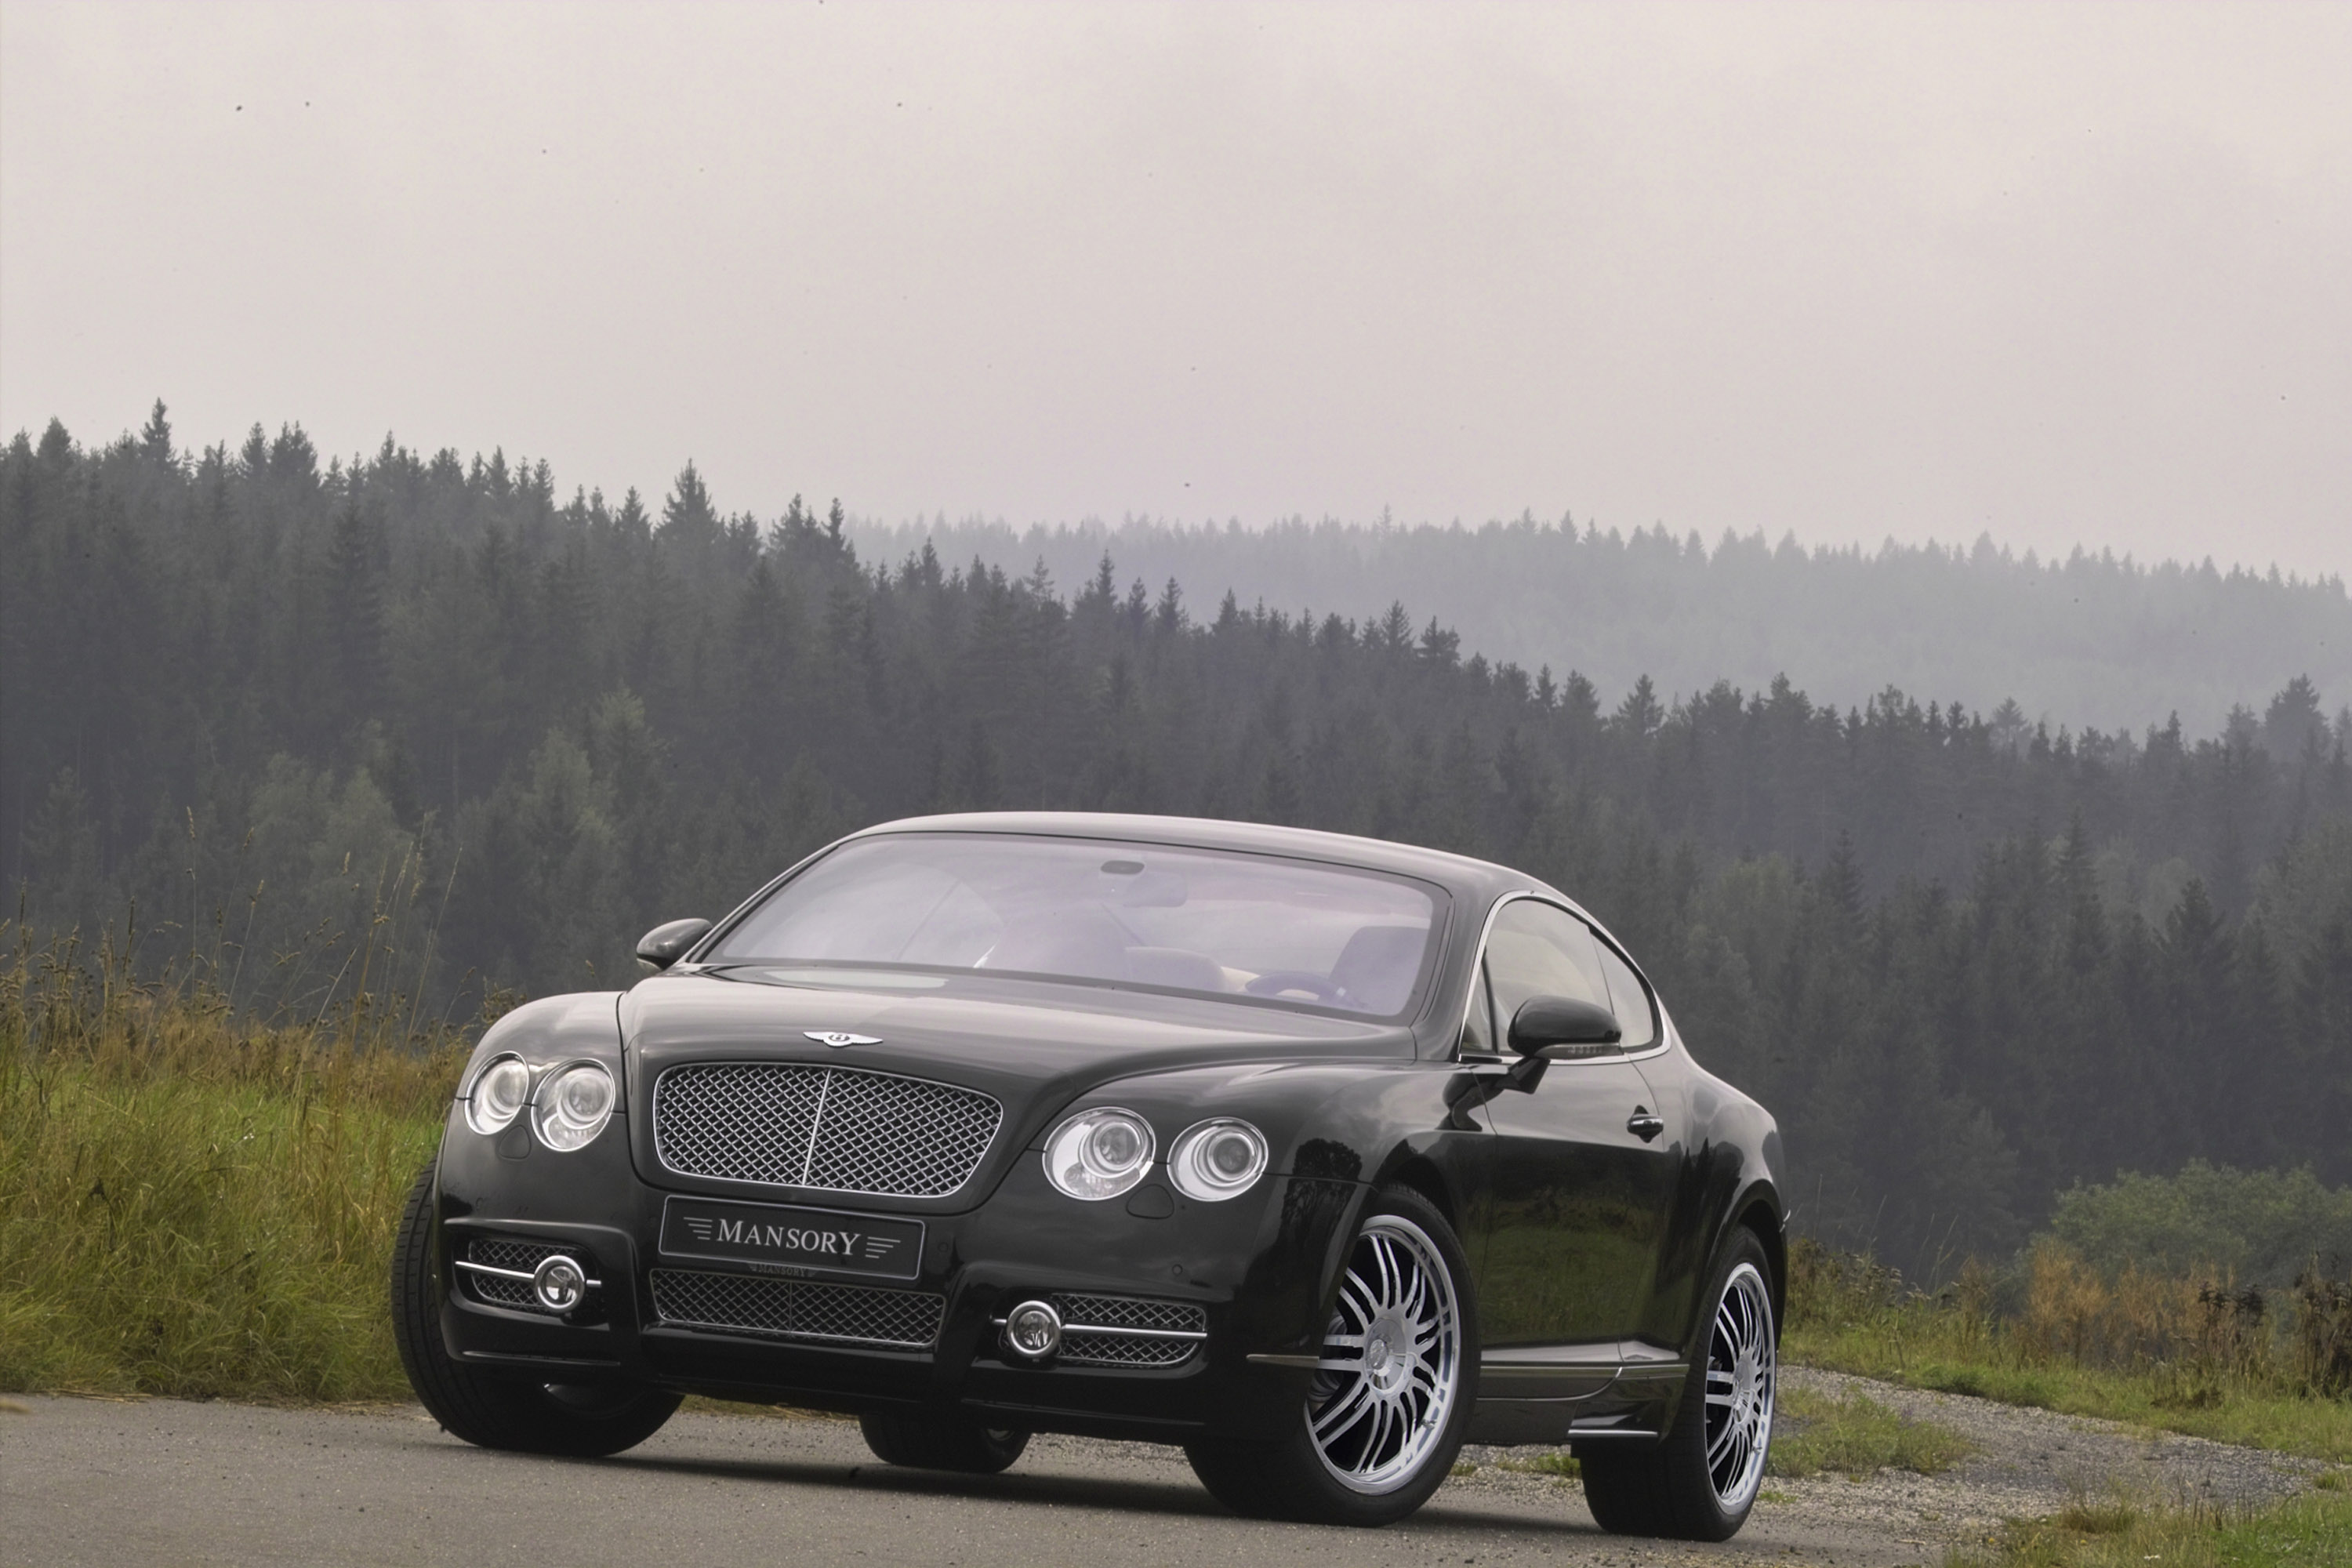 MANSORY Bentley Continental GT photo #1